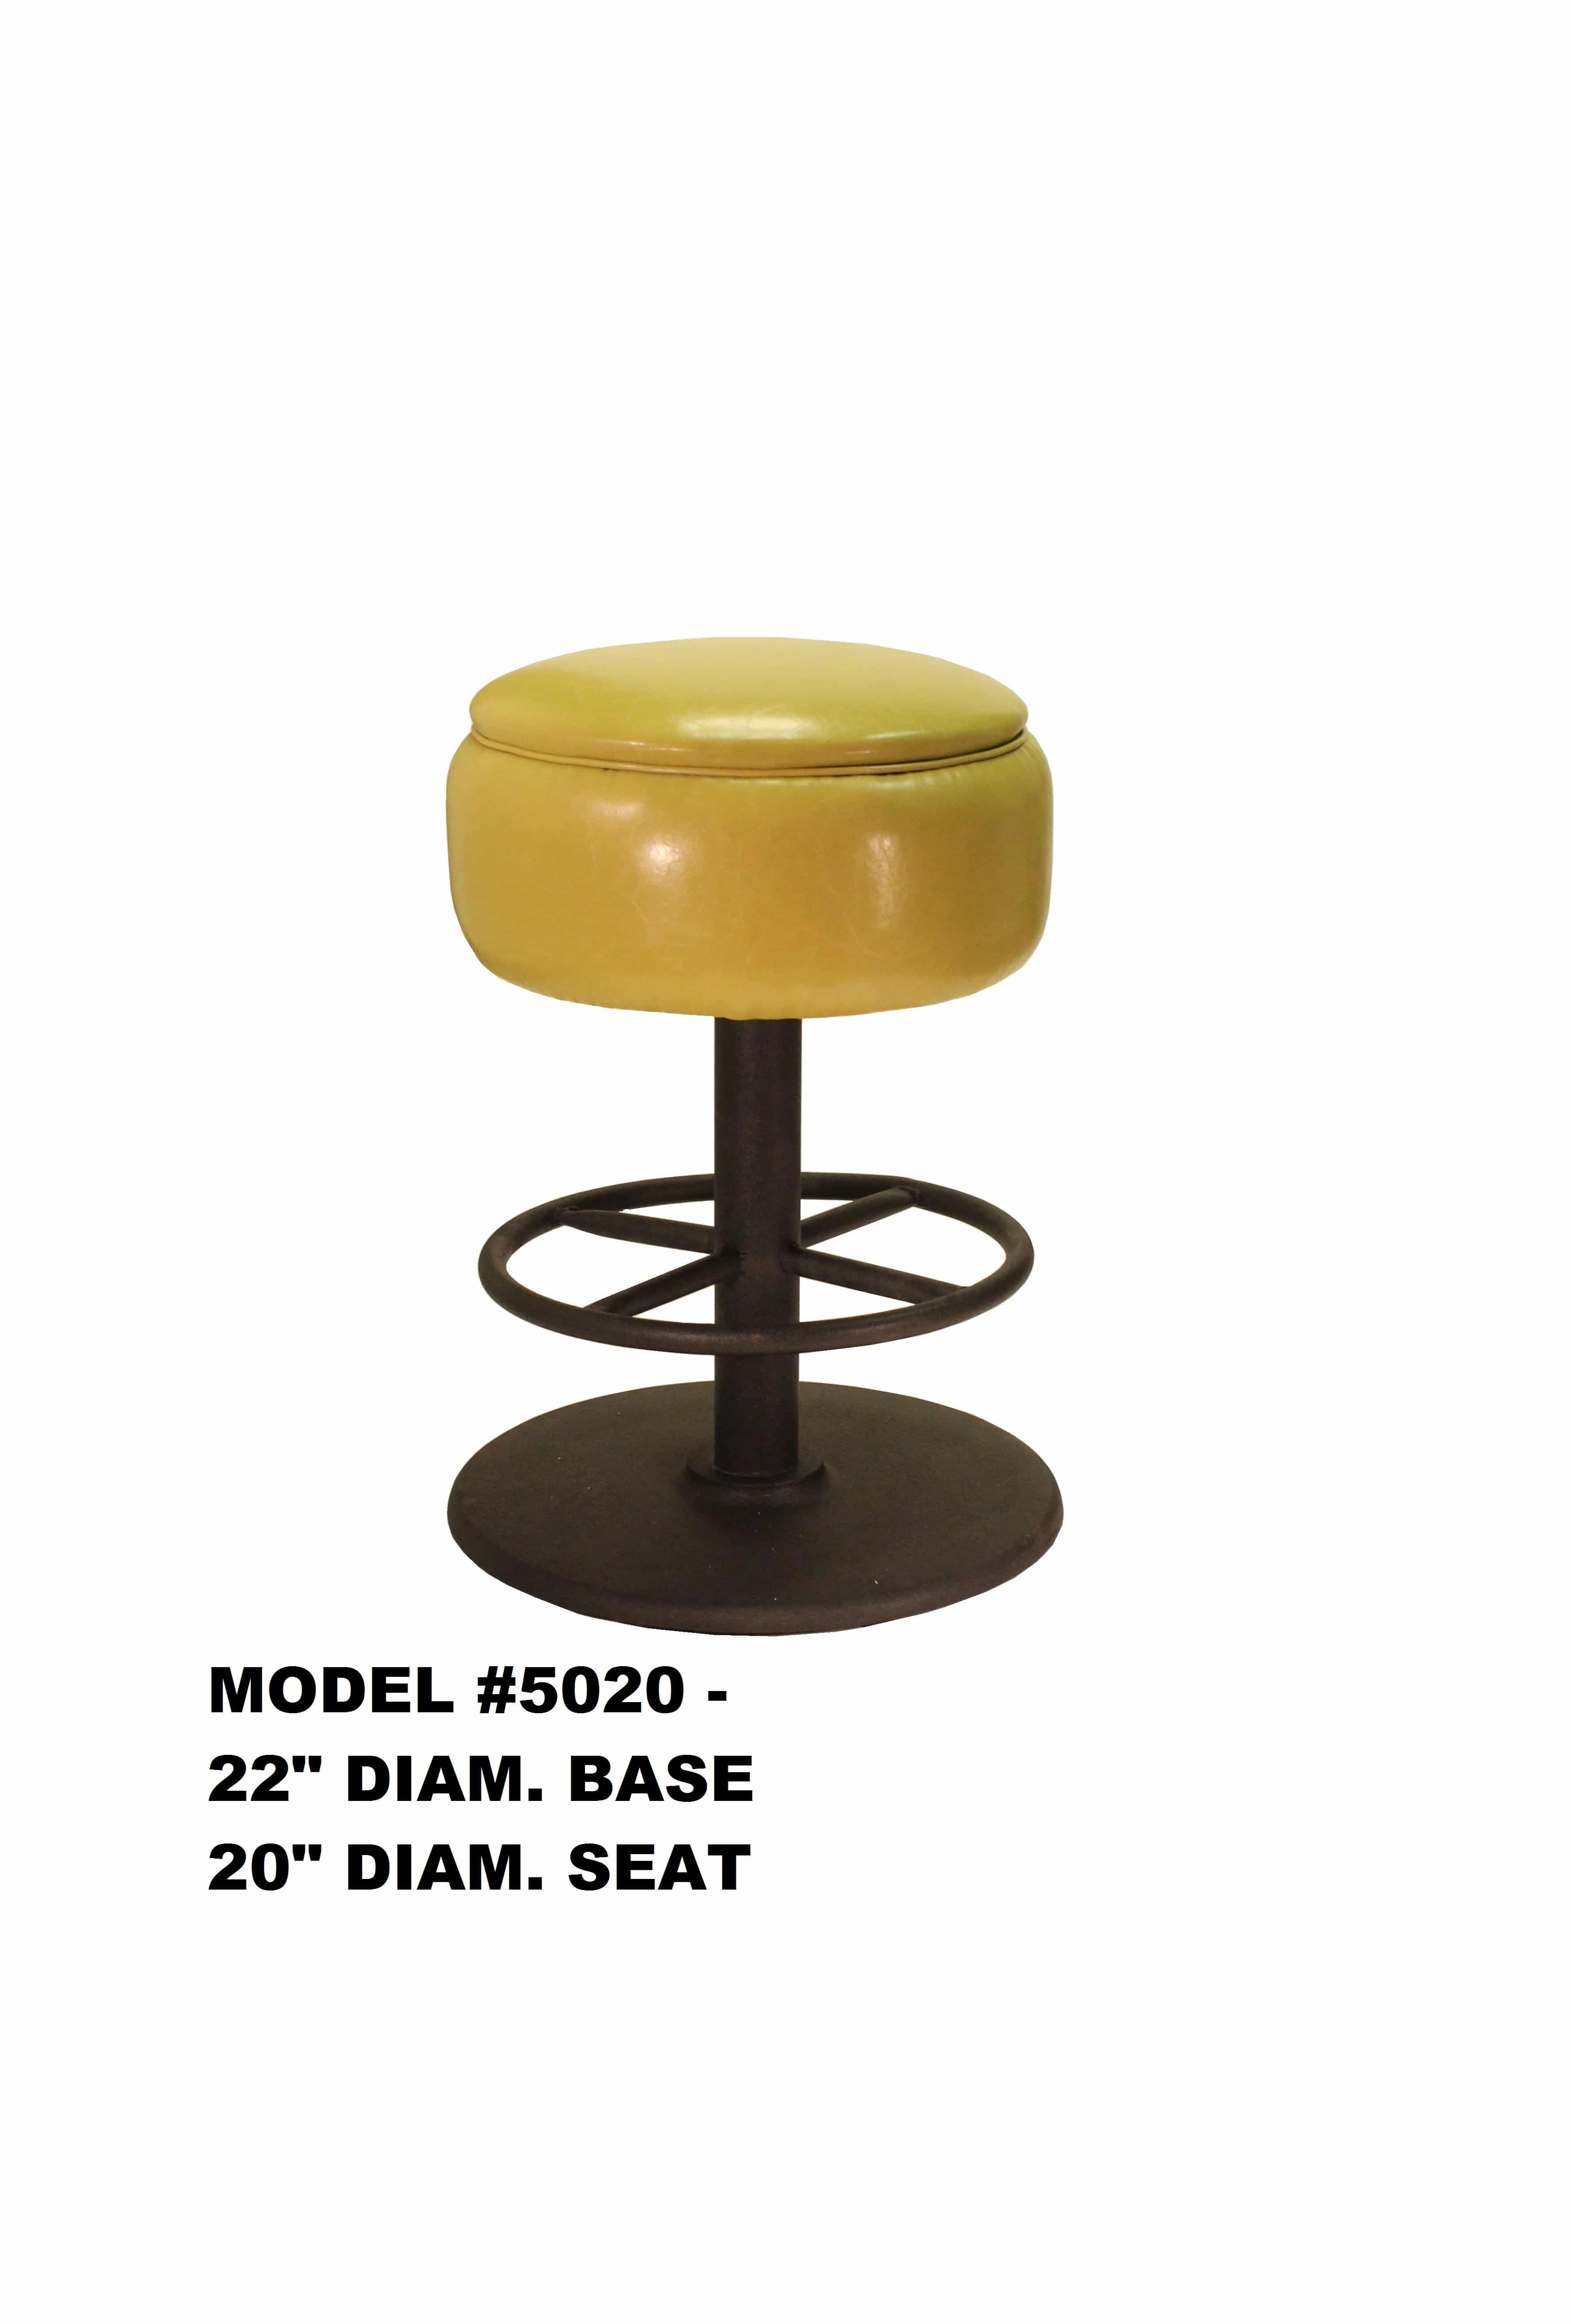 Picture of: Heavy Duty Round Seat Swivel Backless Metal Bar Stool Model 5020 Restaurant Chairs By M Deitz And Sons Inc